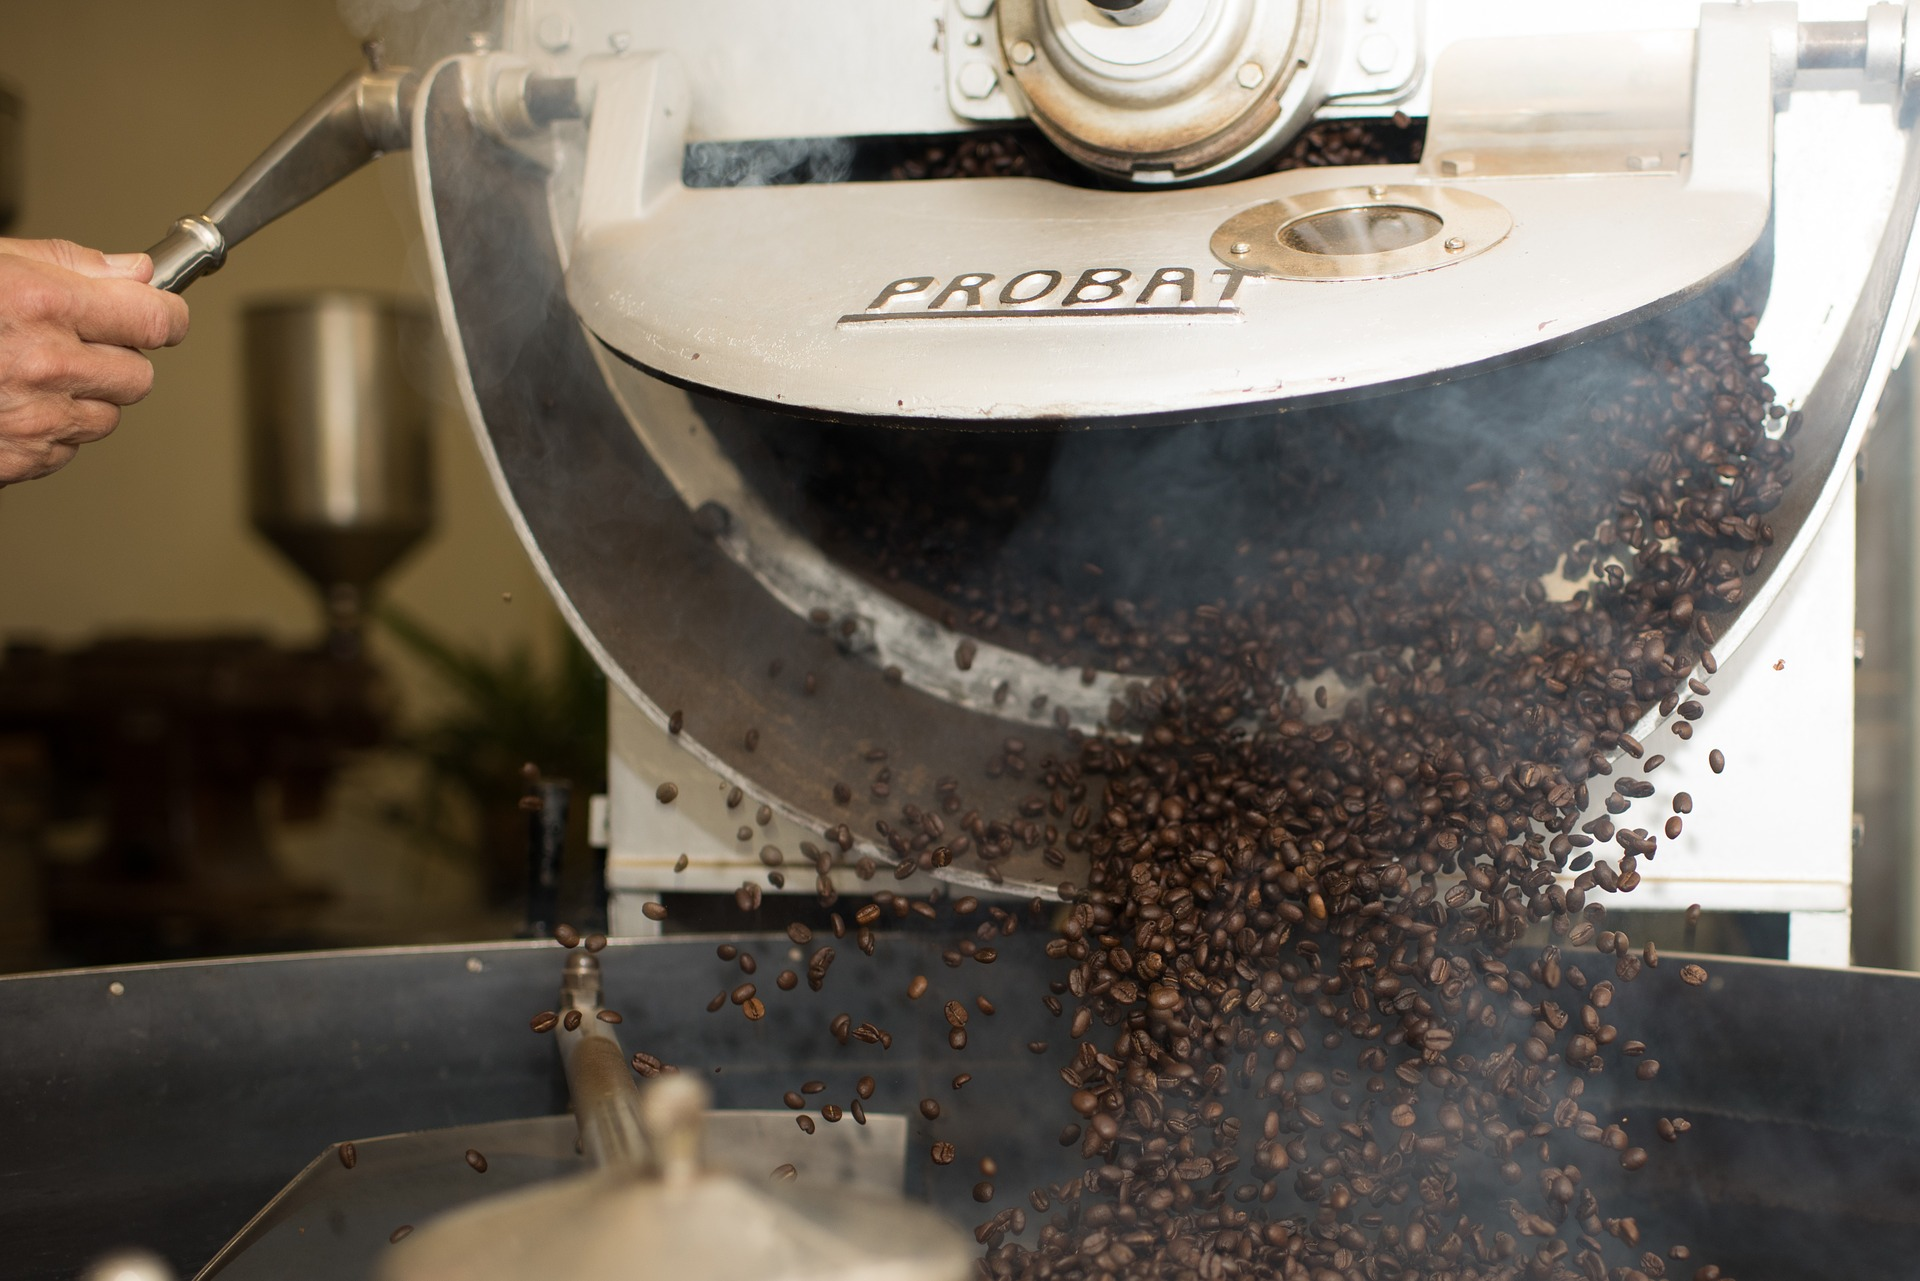 Probast coffee roaster